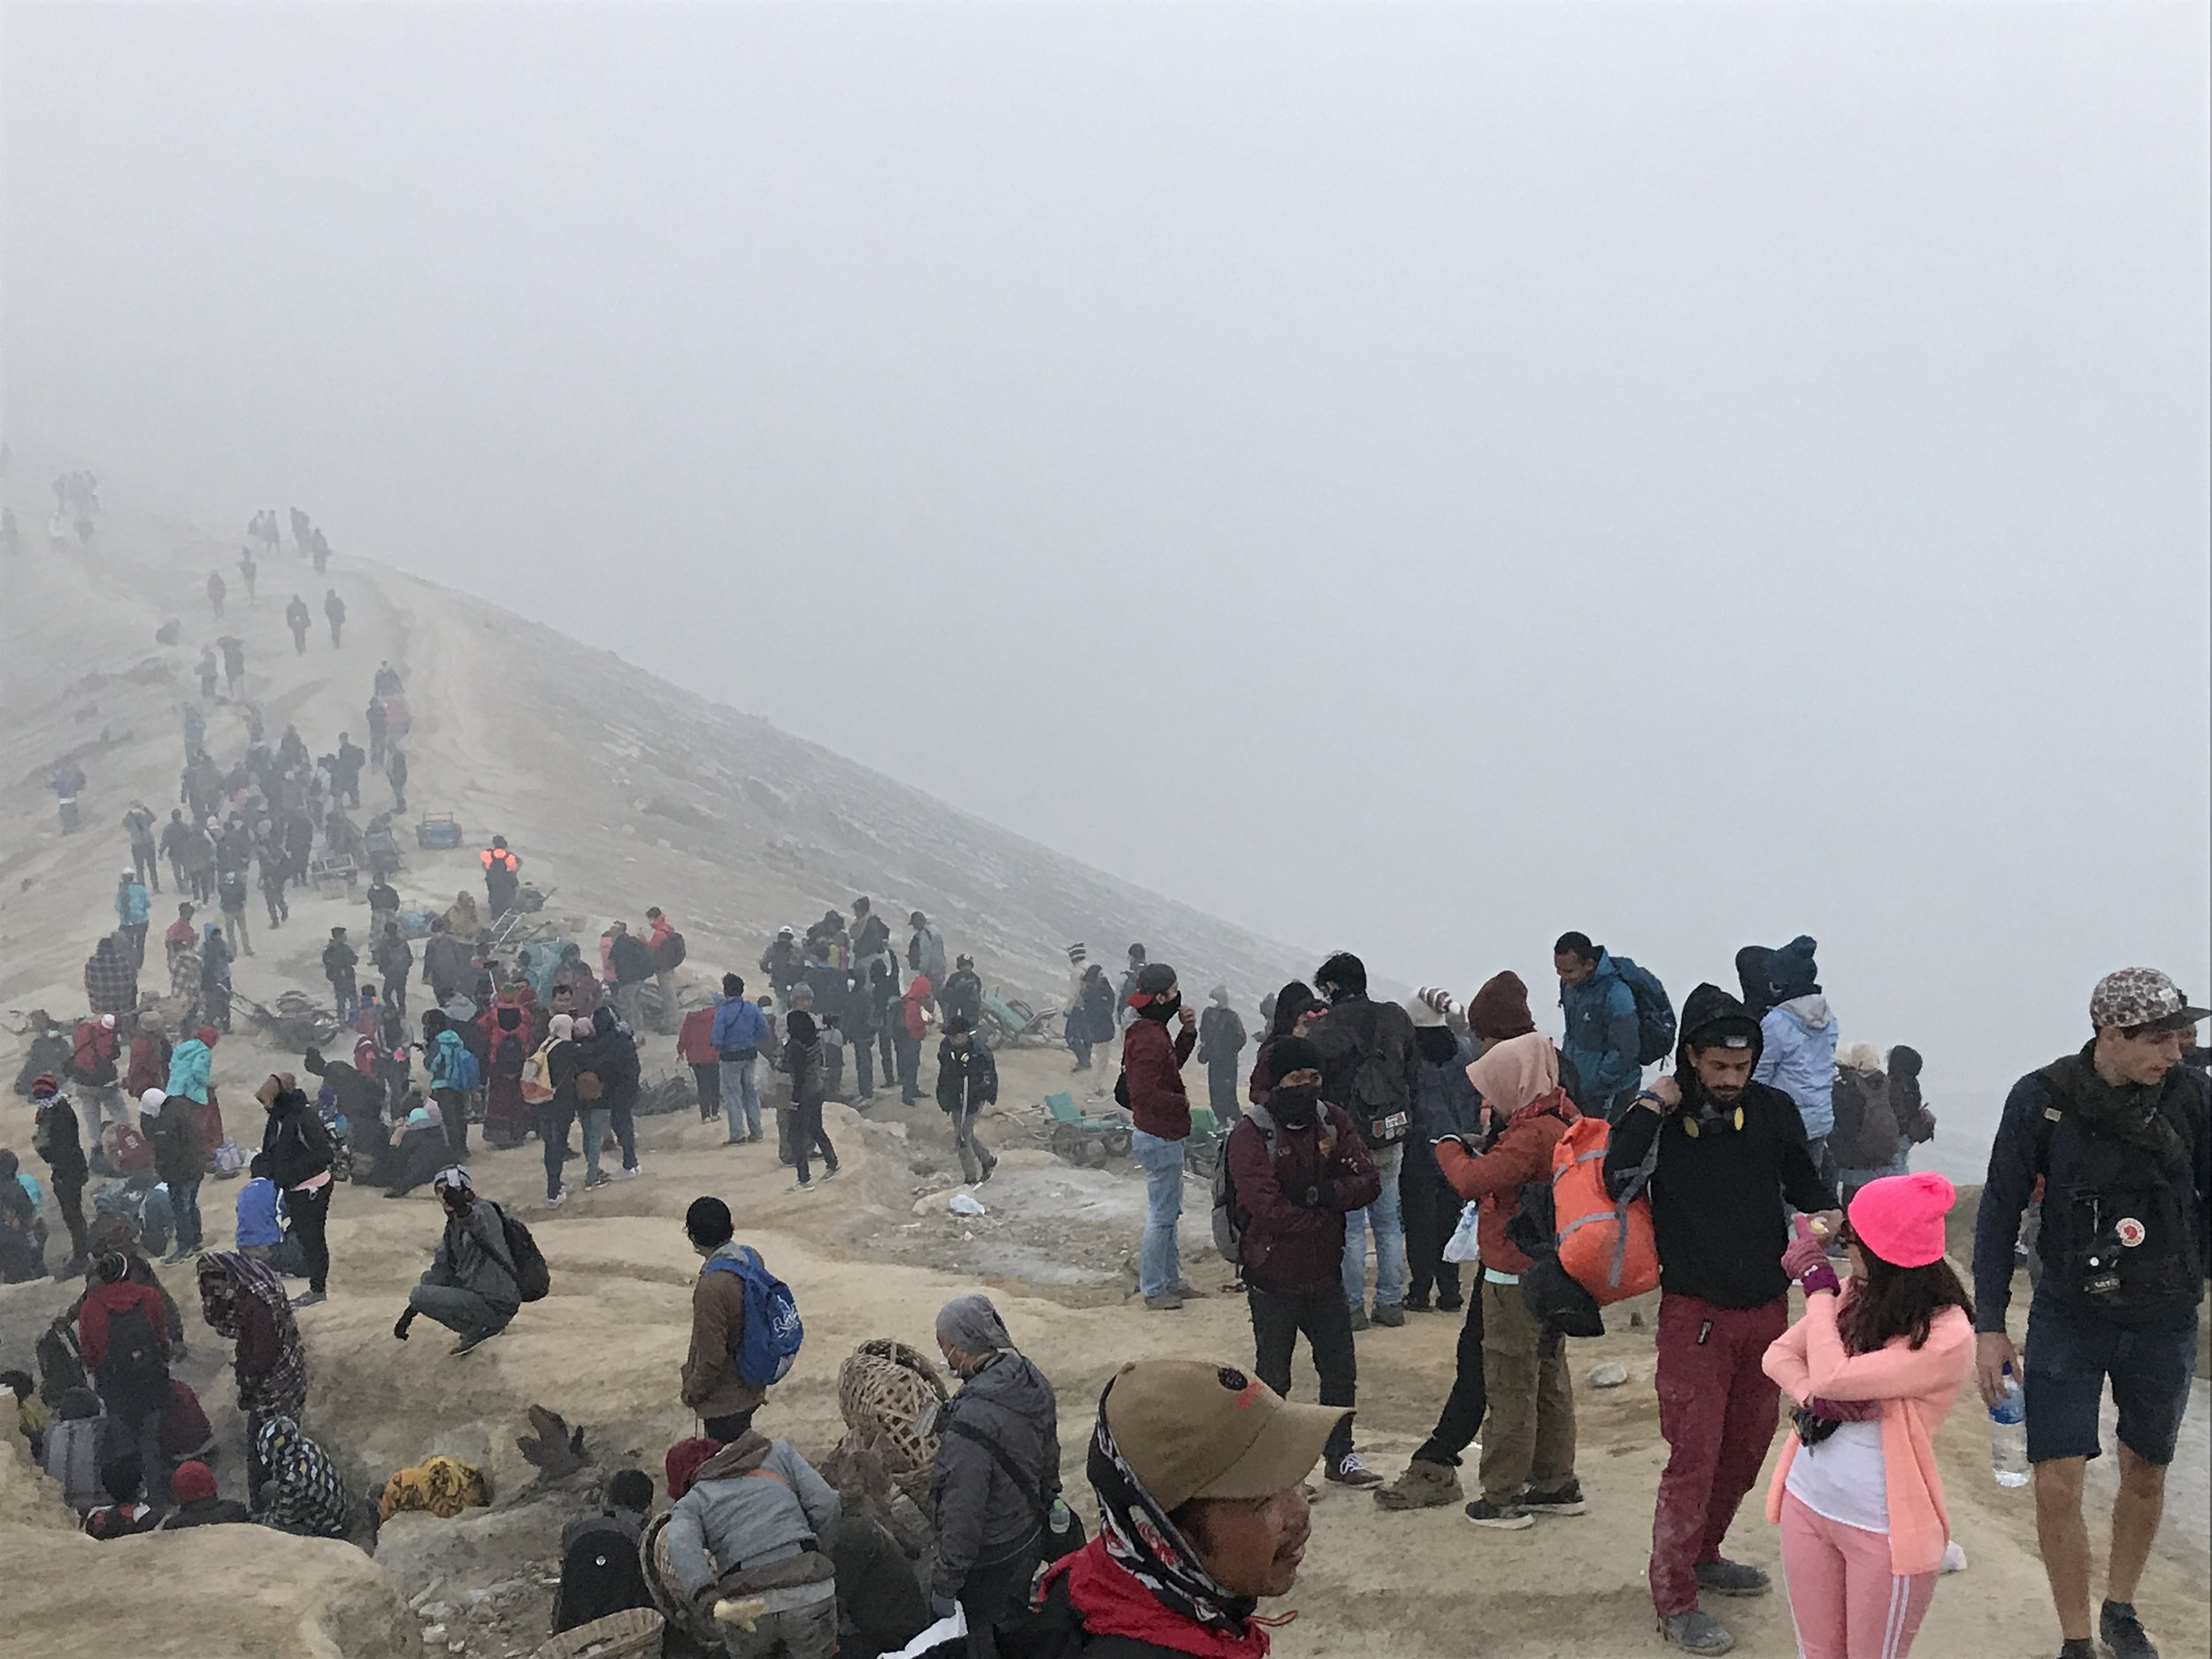 The crowds of people at the rim of the crater.